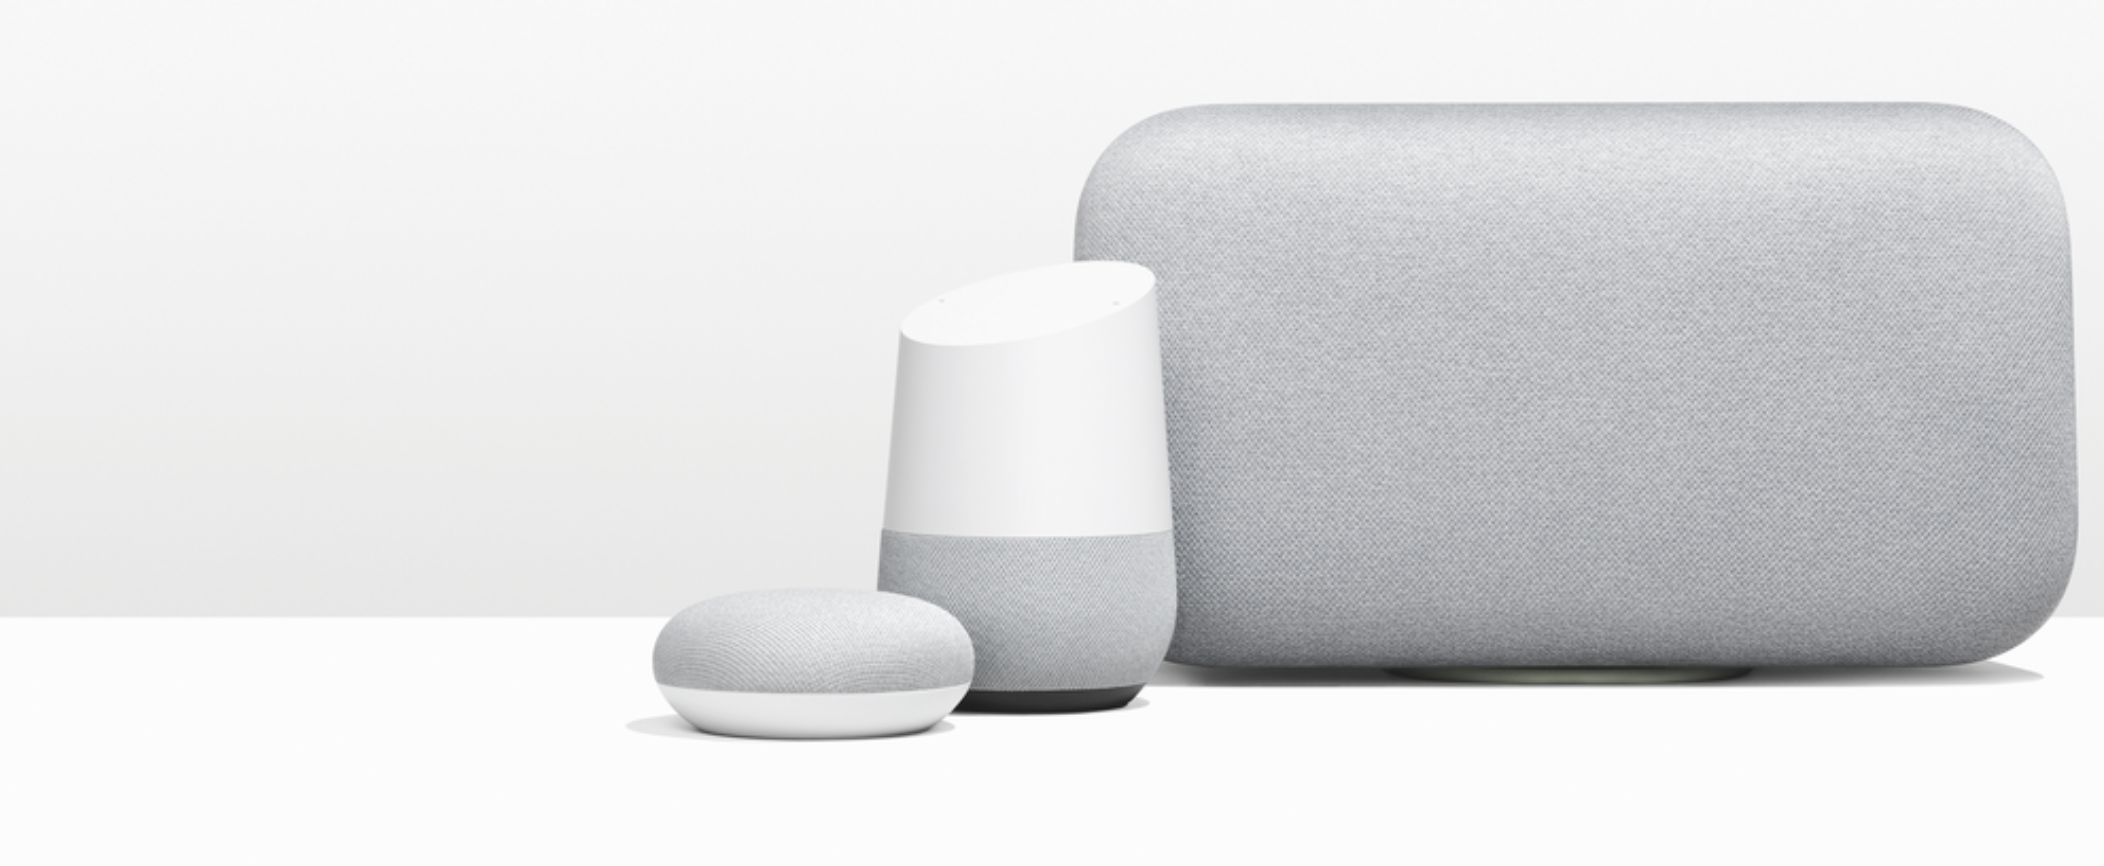 Google offers free YouTube Music for Google Home speakers